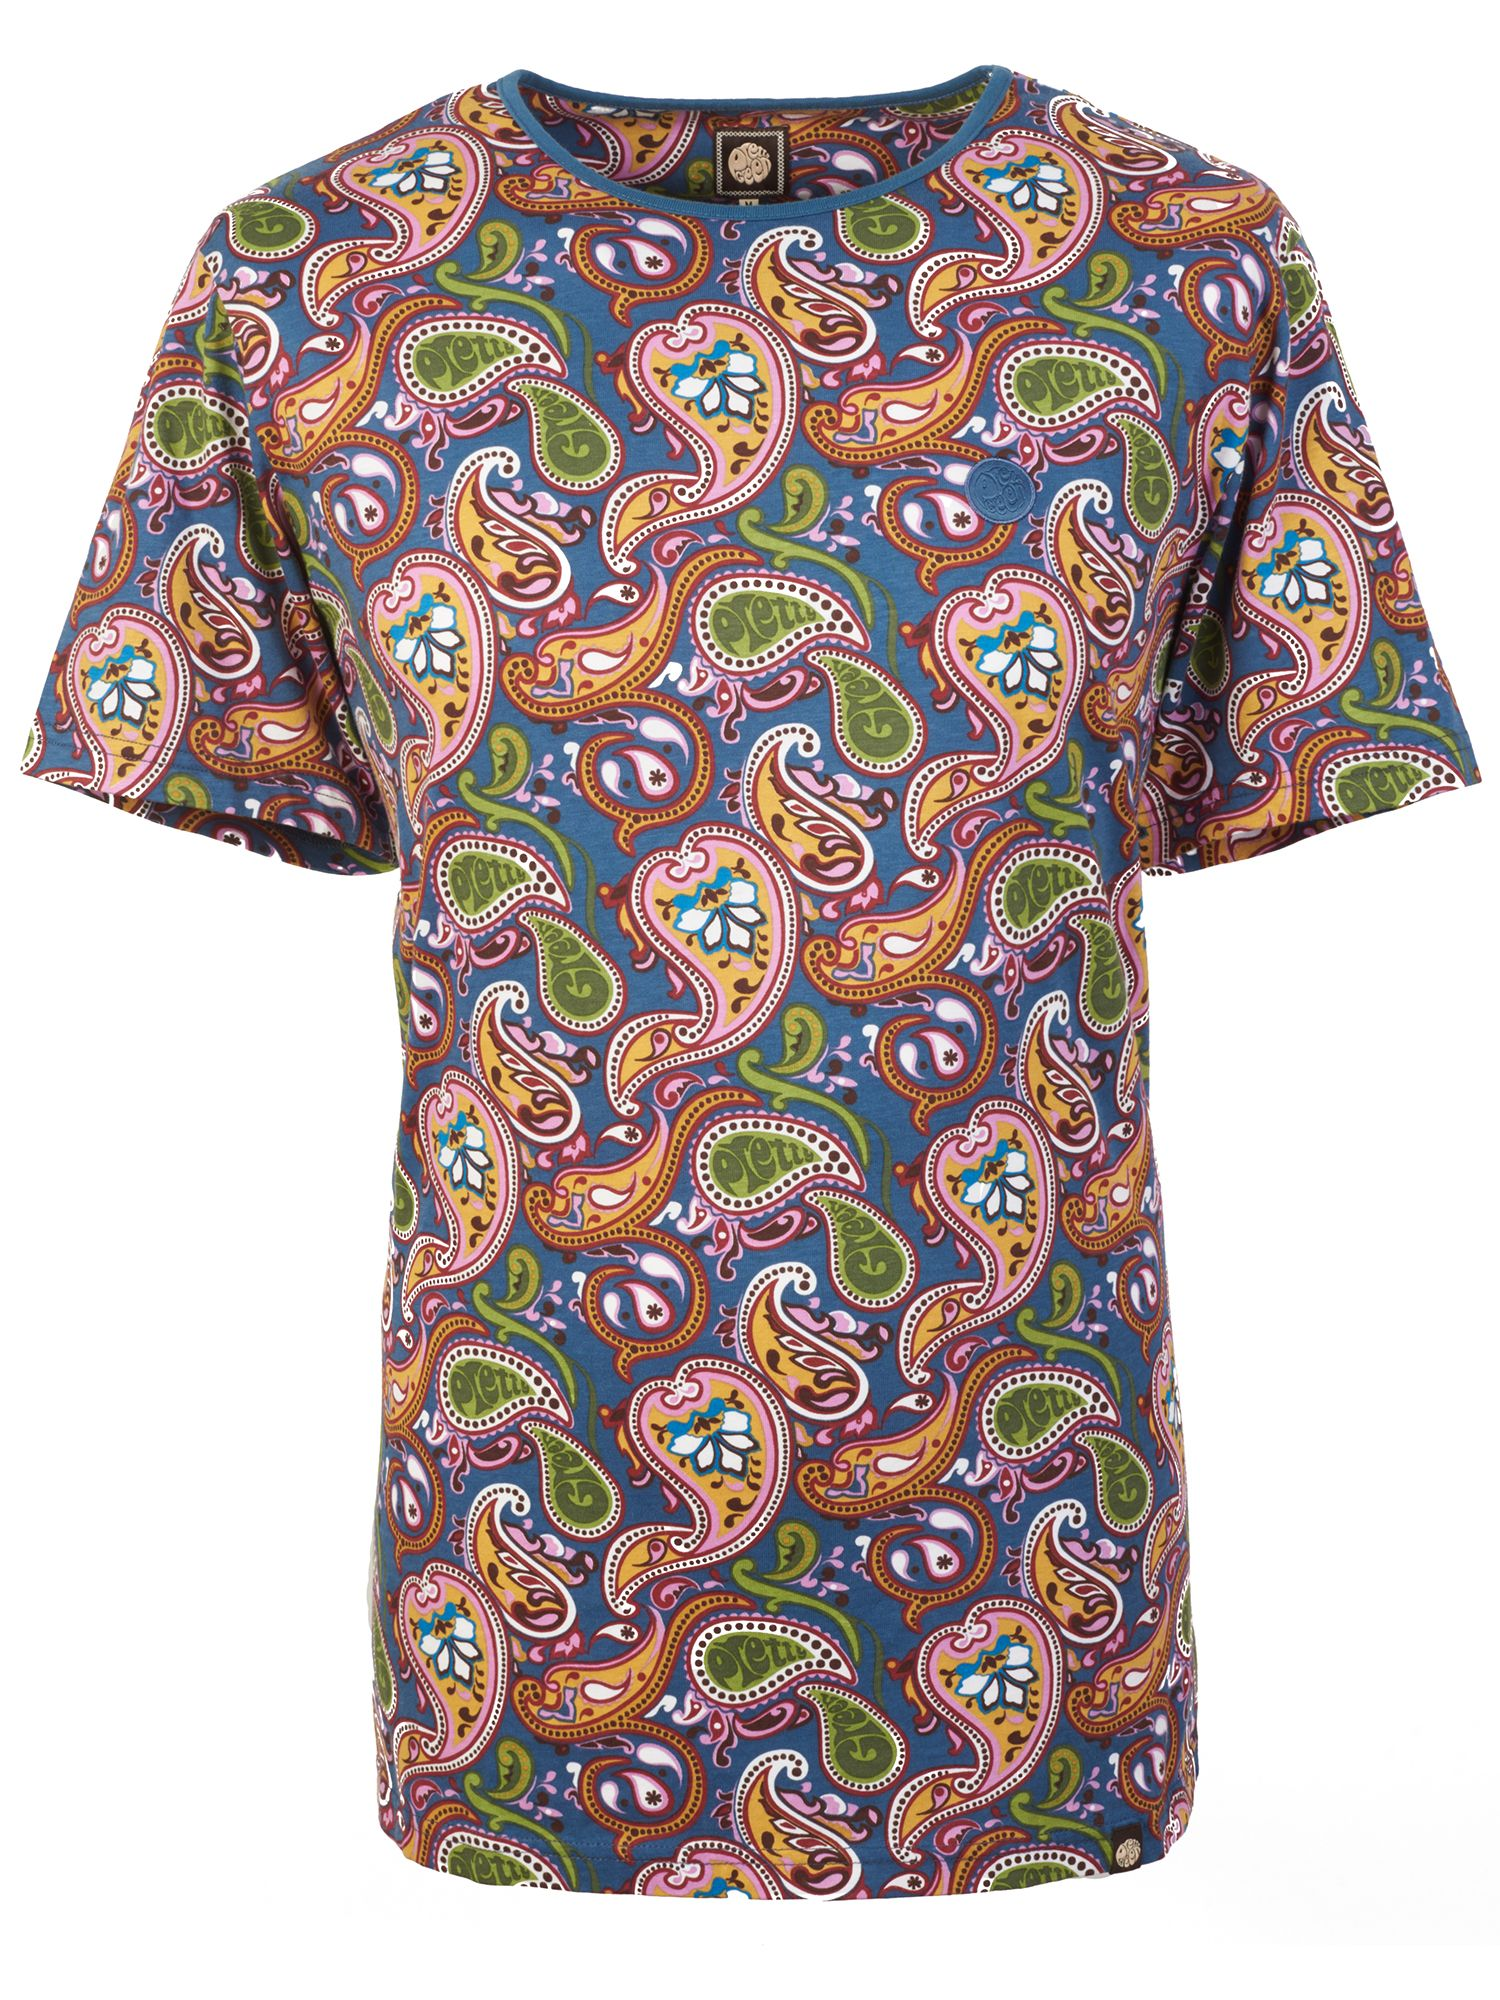 Men's Pretty Green Paisley Print T-Shirt, Multi-Coloured